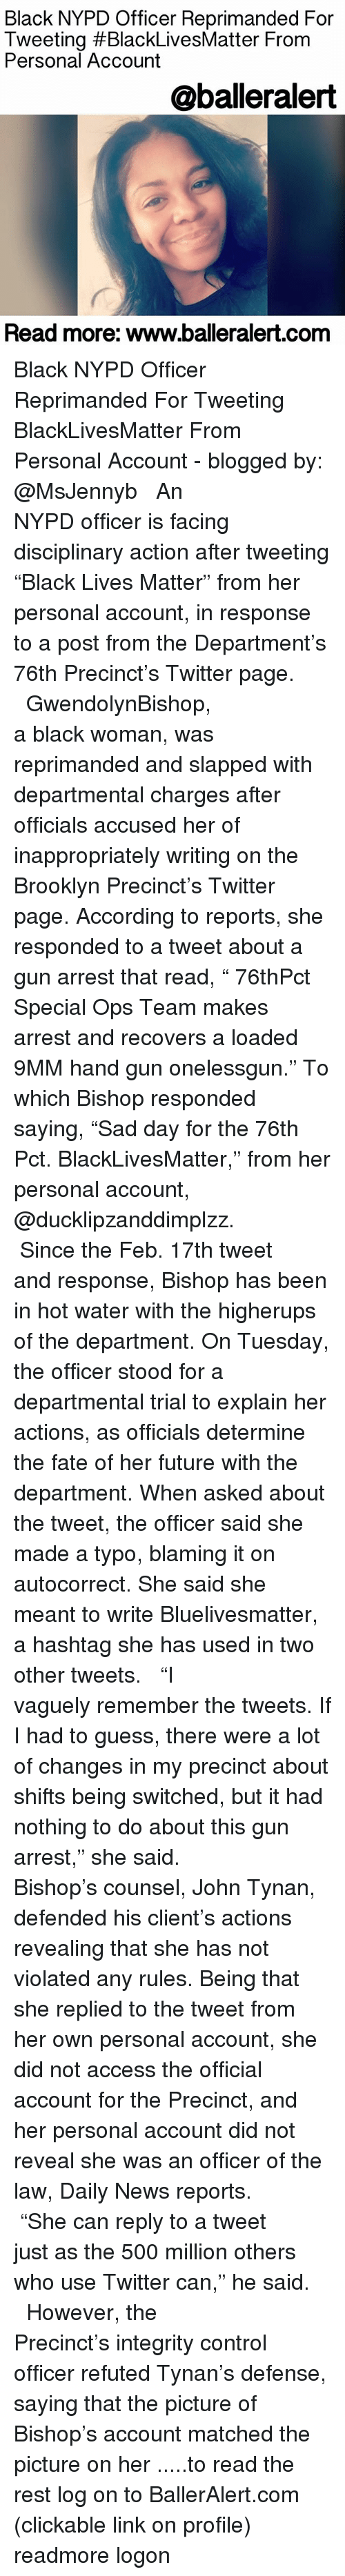 "9mm: Black NYPD Officer Reprimanded For  Tweeting #BlackLivesMatter From  Personal Account  @baller alert  Read more: www.balleralert.com Black NYPD Officer Reprimanded For Tweeting BlackLivesMatter From Personal Account - blogged by: @MsJennyb ⠀⠀⠀⠀⠀⠀⠀⠀⠀ ⠀⠀⠀⠀⠀⠀⠀⠀⠀ An NYPD officer is facing disciplinary action after tweeting ""Black Lives Matter"" from her personal account, in response to a post from the Department's 76th Precinct's Twitter page. ⠀⠀⠀⠀⠀⠀⠀⠀⠀ ⠀⠀⠀⠀⠀⠀⠀⠀⠀ GwendolynBishop, a black woman, was reprimanded and slapped with departmental charges after officials accused her of inappropriately writing on the Brooklyn Precinct's Twitter page. According to reports, she responded to a tweet about a gun arrest that read, "" 76thPct Special Ops Team makes arrest and recovers a loaded 9MM hand gun onelessgun."" To which Bishop responded saying, ""Sad day for the 76th Pct. BlackLivesMatter,"" from her personal account, @ducklipzanddimplzz. ⠀⠀⠀⠀⠀⠀⠀⠀⠀ ⠀⠀⠀⠀⠀⠀⠀⠀⠀ Since the Feb. 17th tweet and response, Bishop has been in hot water with the higherups of the department. On Tuesday, the officer stood for a departmental trial to explain her actions, as officials determine the fate of her future with the department. When asked about the tweet, the officer said she made a typo, blaming it on autocorrect. She said she meant to write Bluelivesmatter, a hashtag she has used in two other tweets. ⠀⠀⠀⠀⠀⠀⠀⠀⠀ ⠀⠀⠀⠀⠀⠀⠀⠀⠀ ""I vaguely remember the tweets. If I had to guess, there were a lot of changes in my precinct about shifts being switched, but it had nothing to do about this gun arrest,"" she said. ⠀⠀⠀⠀⠀⠀⠀⠀⠀ ⠀⠀⠀⠀⠀⠀⠀⠀⠀ Bishop's counsel, John Tynan, defended his client's actions revealing that she has not violated any rules. Being that she replied to the tweet from her own personal account, she did not access the official account for the Precinct, and her personal account did not reveal she was an officer of the law, Daily News reports. ⠀⠀⠀⠀⠀⠀⠀⠀⠀ ⠀⠀⠀⠀⠀⠀⠀⠀⠀ ""She can reply to a tweet just as the 500 million others who use Twitter can,"" he said. ⠀⠀⠀⠀⠀⠀⠀⠀⠀ ⠀⠀⠀⠀⠀⠀⠀⠀⠀ However, the Precinct's integrity control officer refuted Tynan's defense, saying that the picture of Bishop's account matched the picture on her .....to read the rest log on to BallerAlert.com (clickable link on profile) readmore logon"